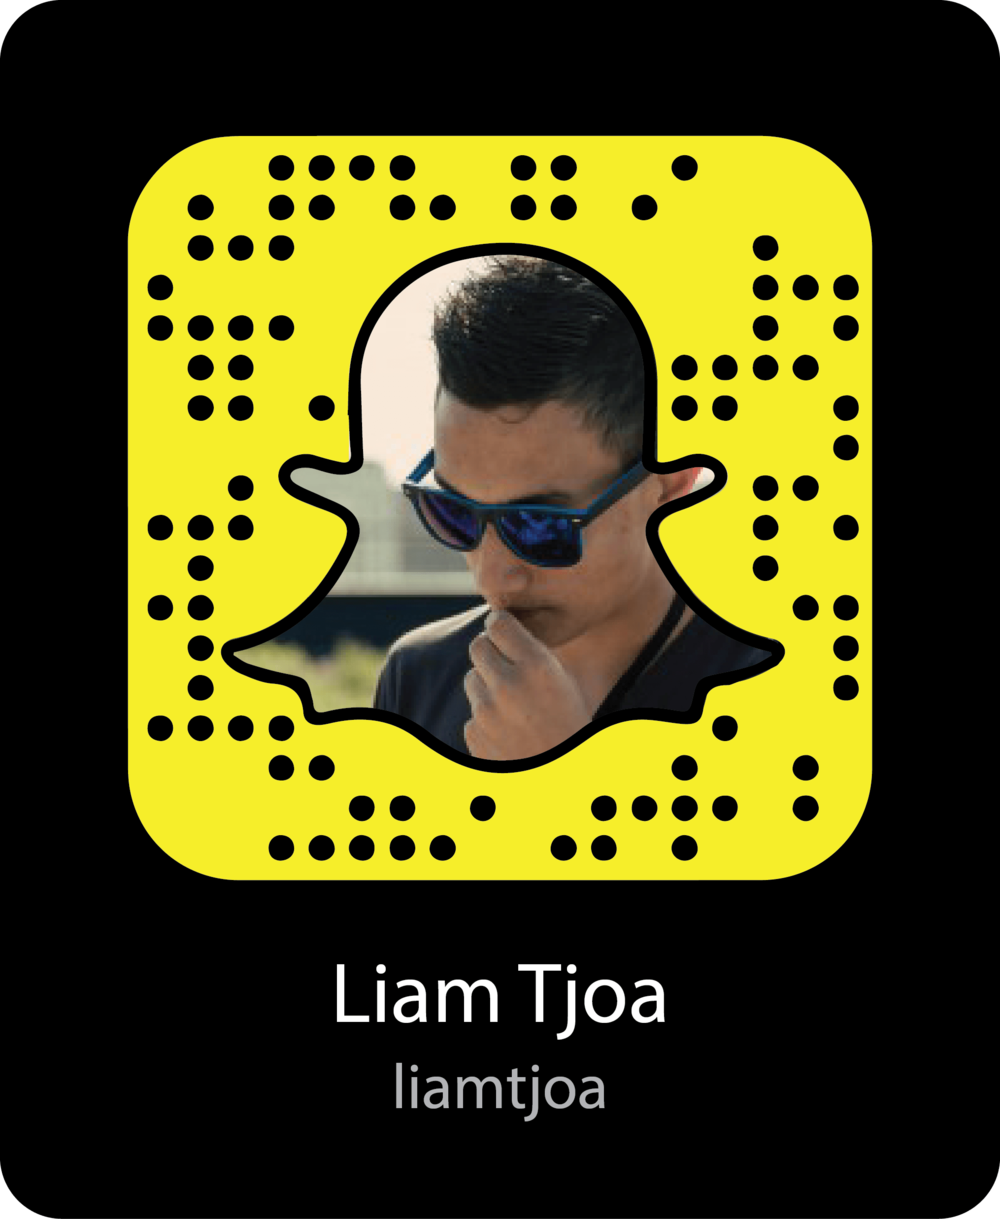 liam-tjoa-storytellers-snapchat-snapcode.png